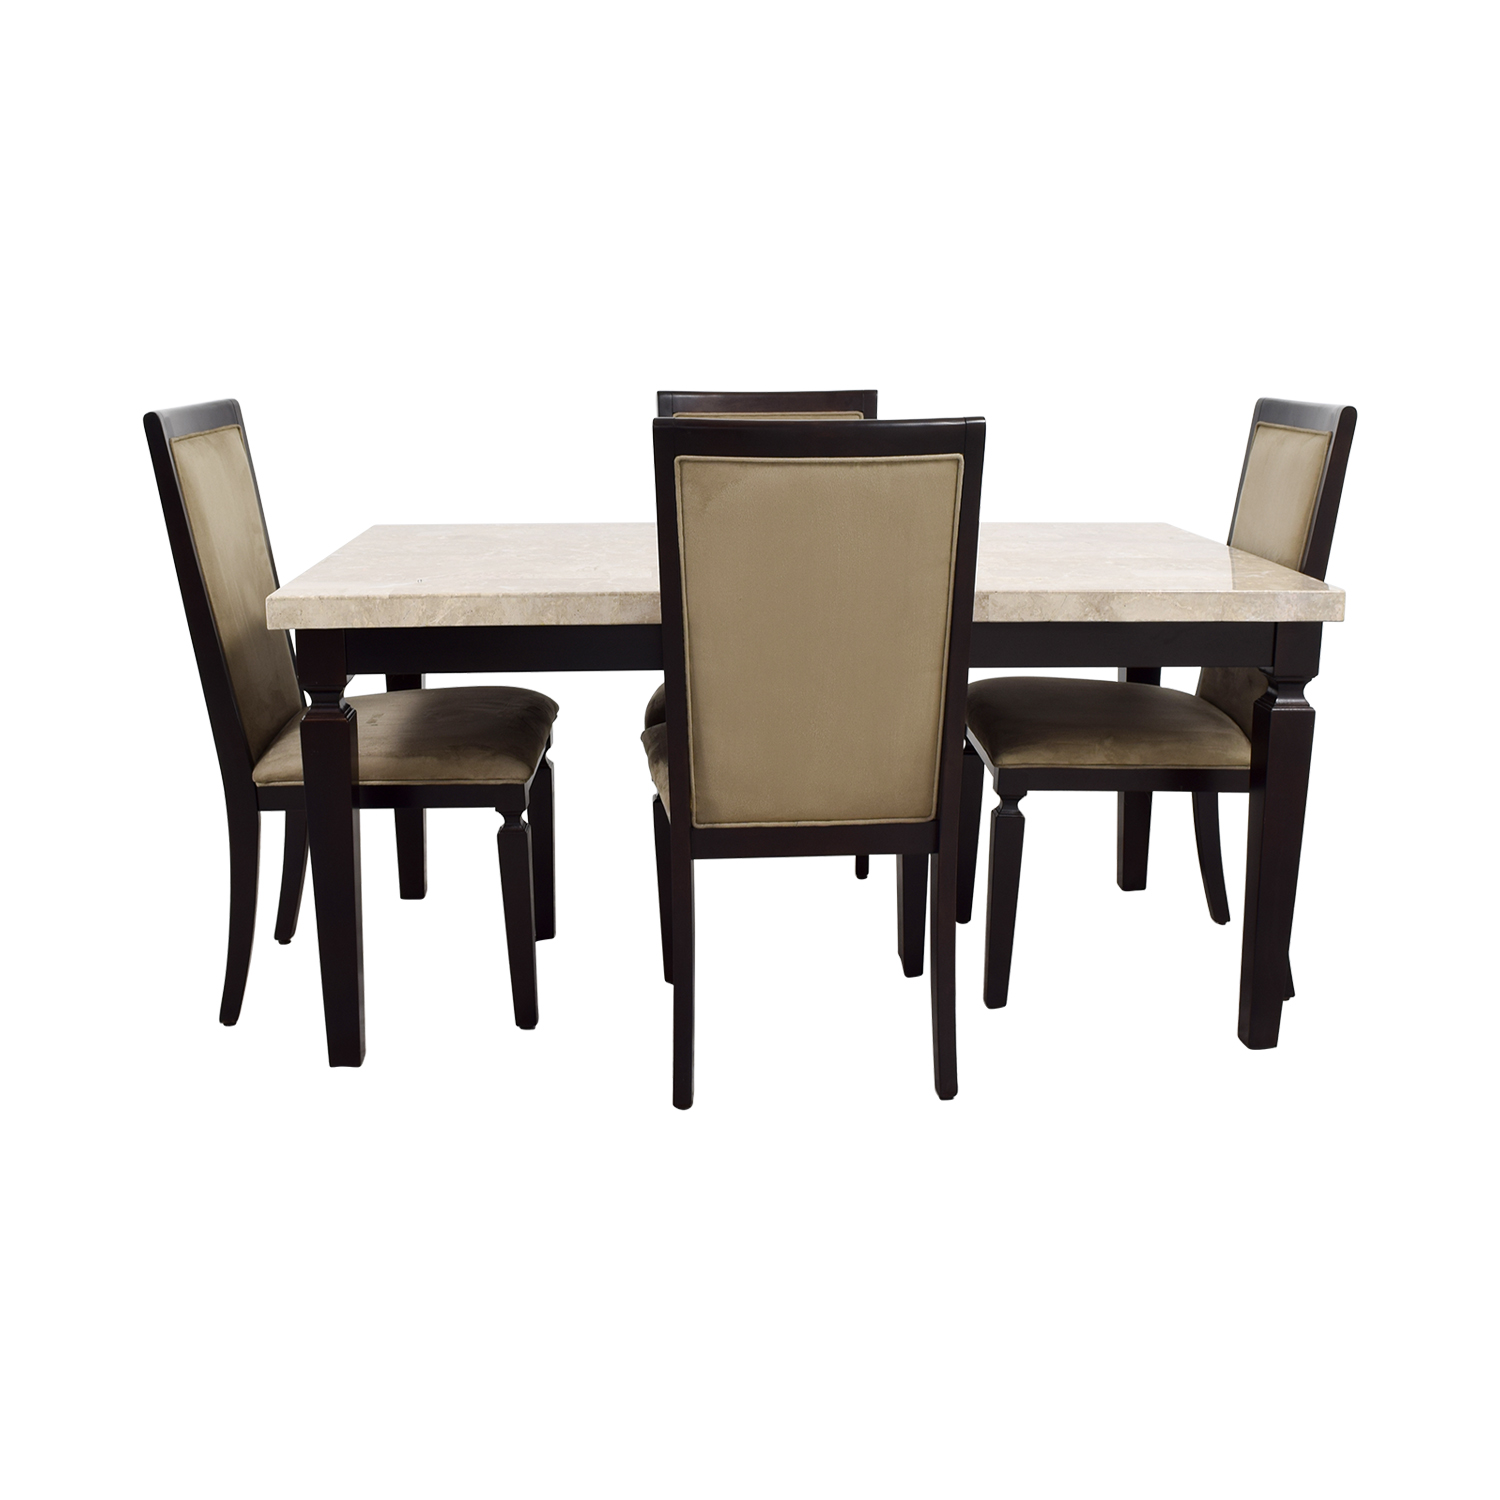 Raymour & Flanigan Raymour & Flanigan Rogue Marble Dining Set price